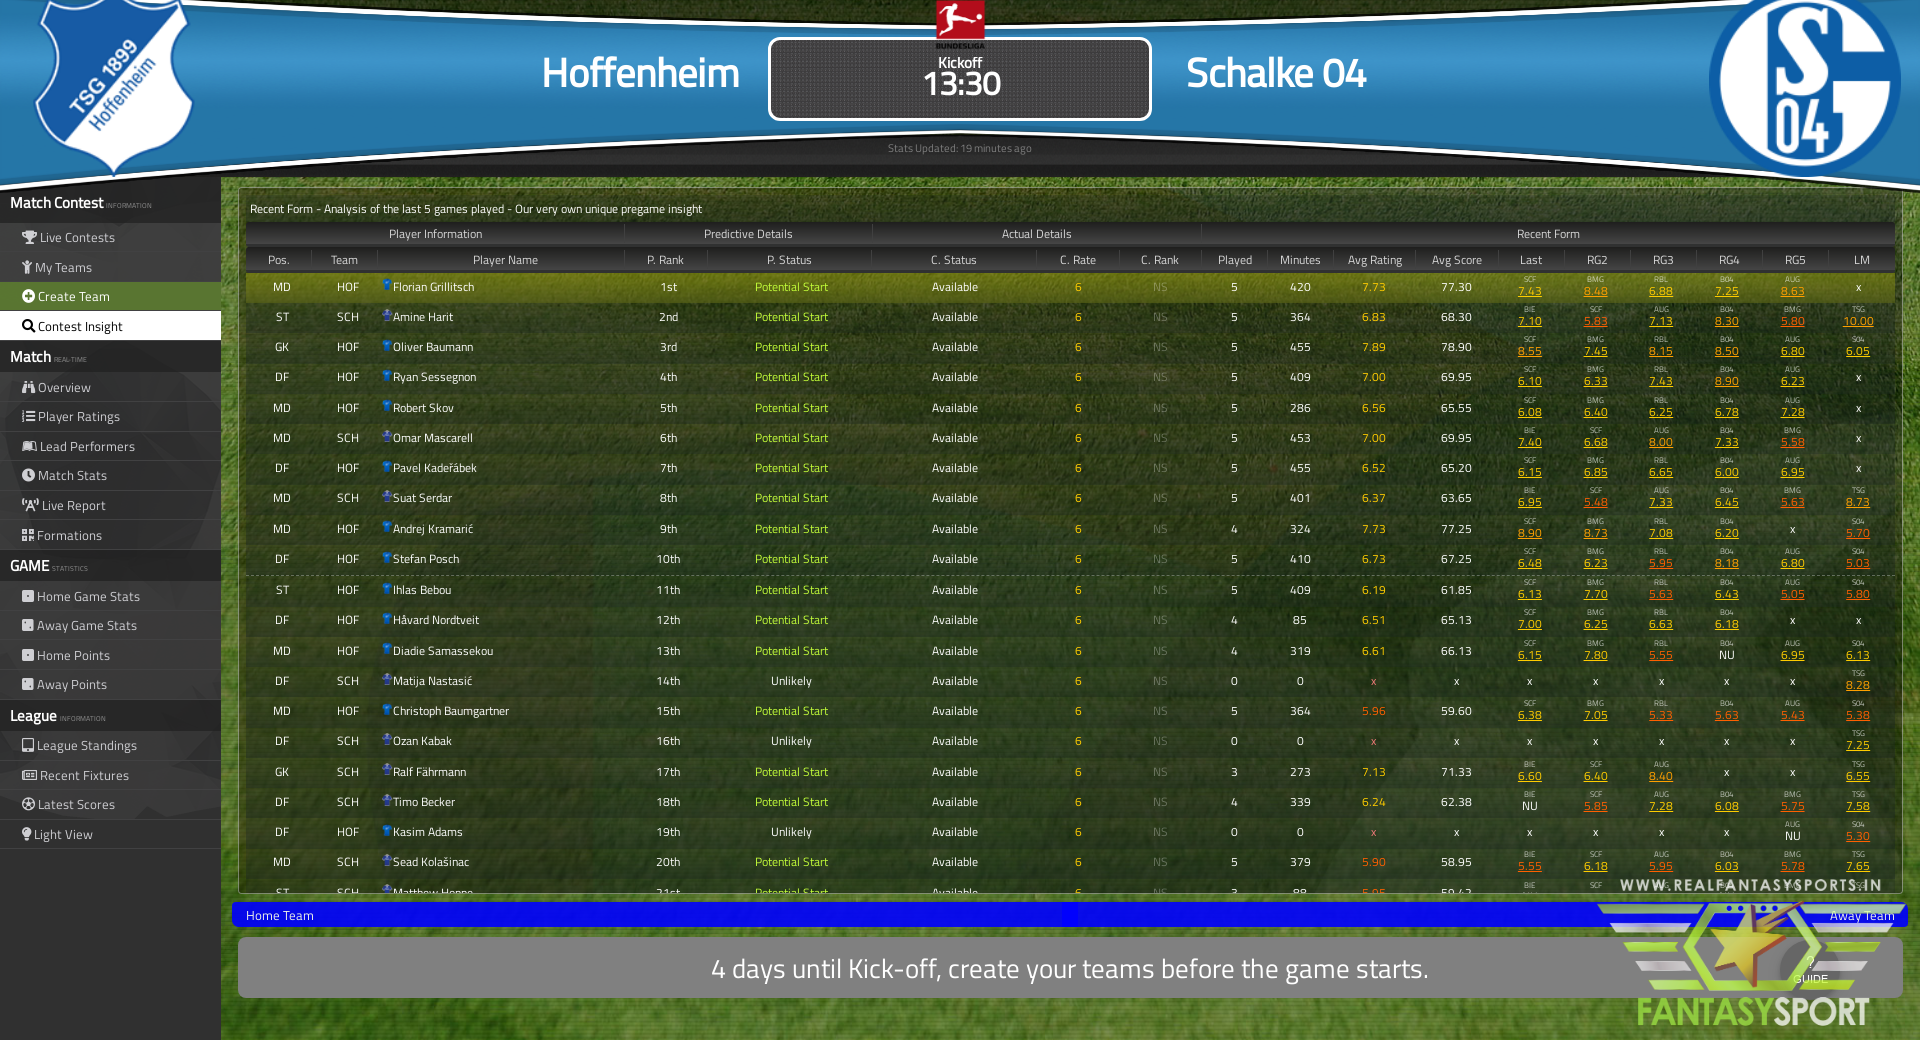 Fantasy Football Hoffenheim Vs Schalke 04